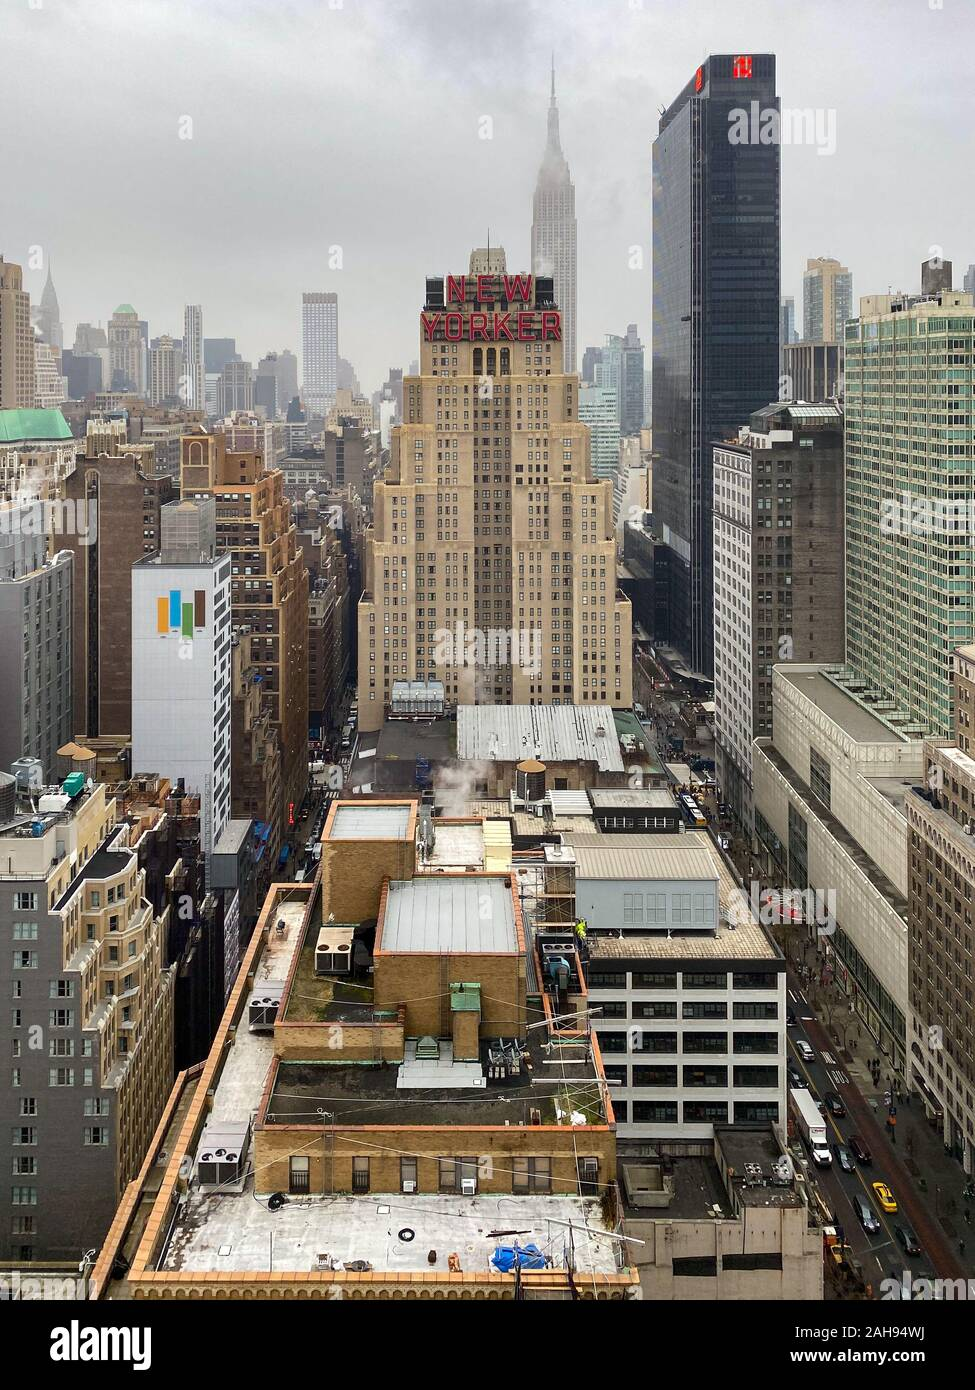 New York City - Dec 13, 2019:  The New Yorker Hotel one of the most famous hotels in New York, located on 8th Avenue in Midtown Manhattan. Stock Photo